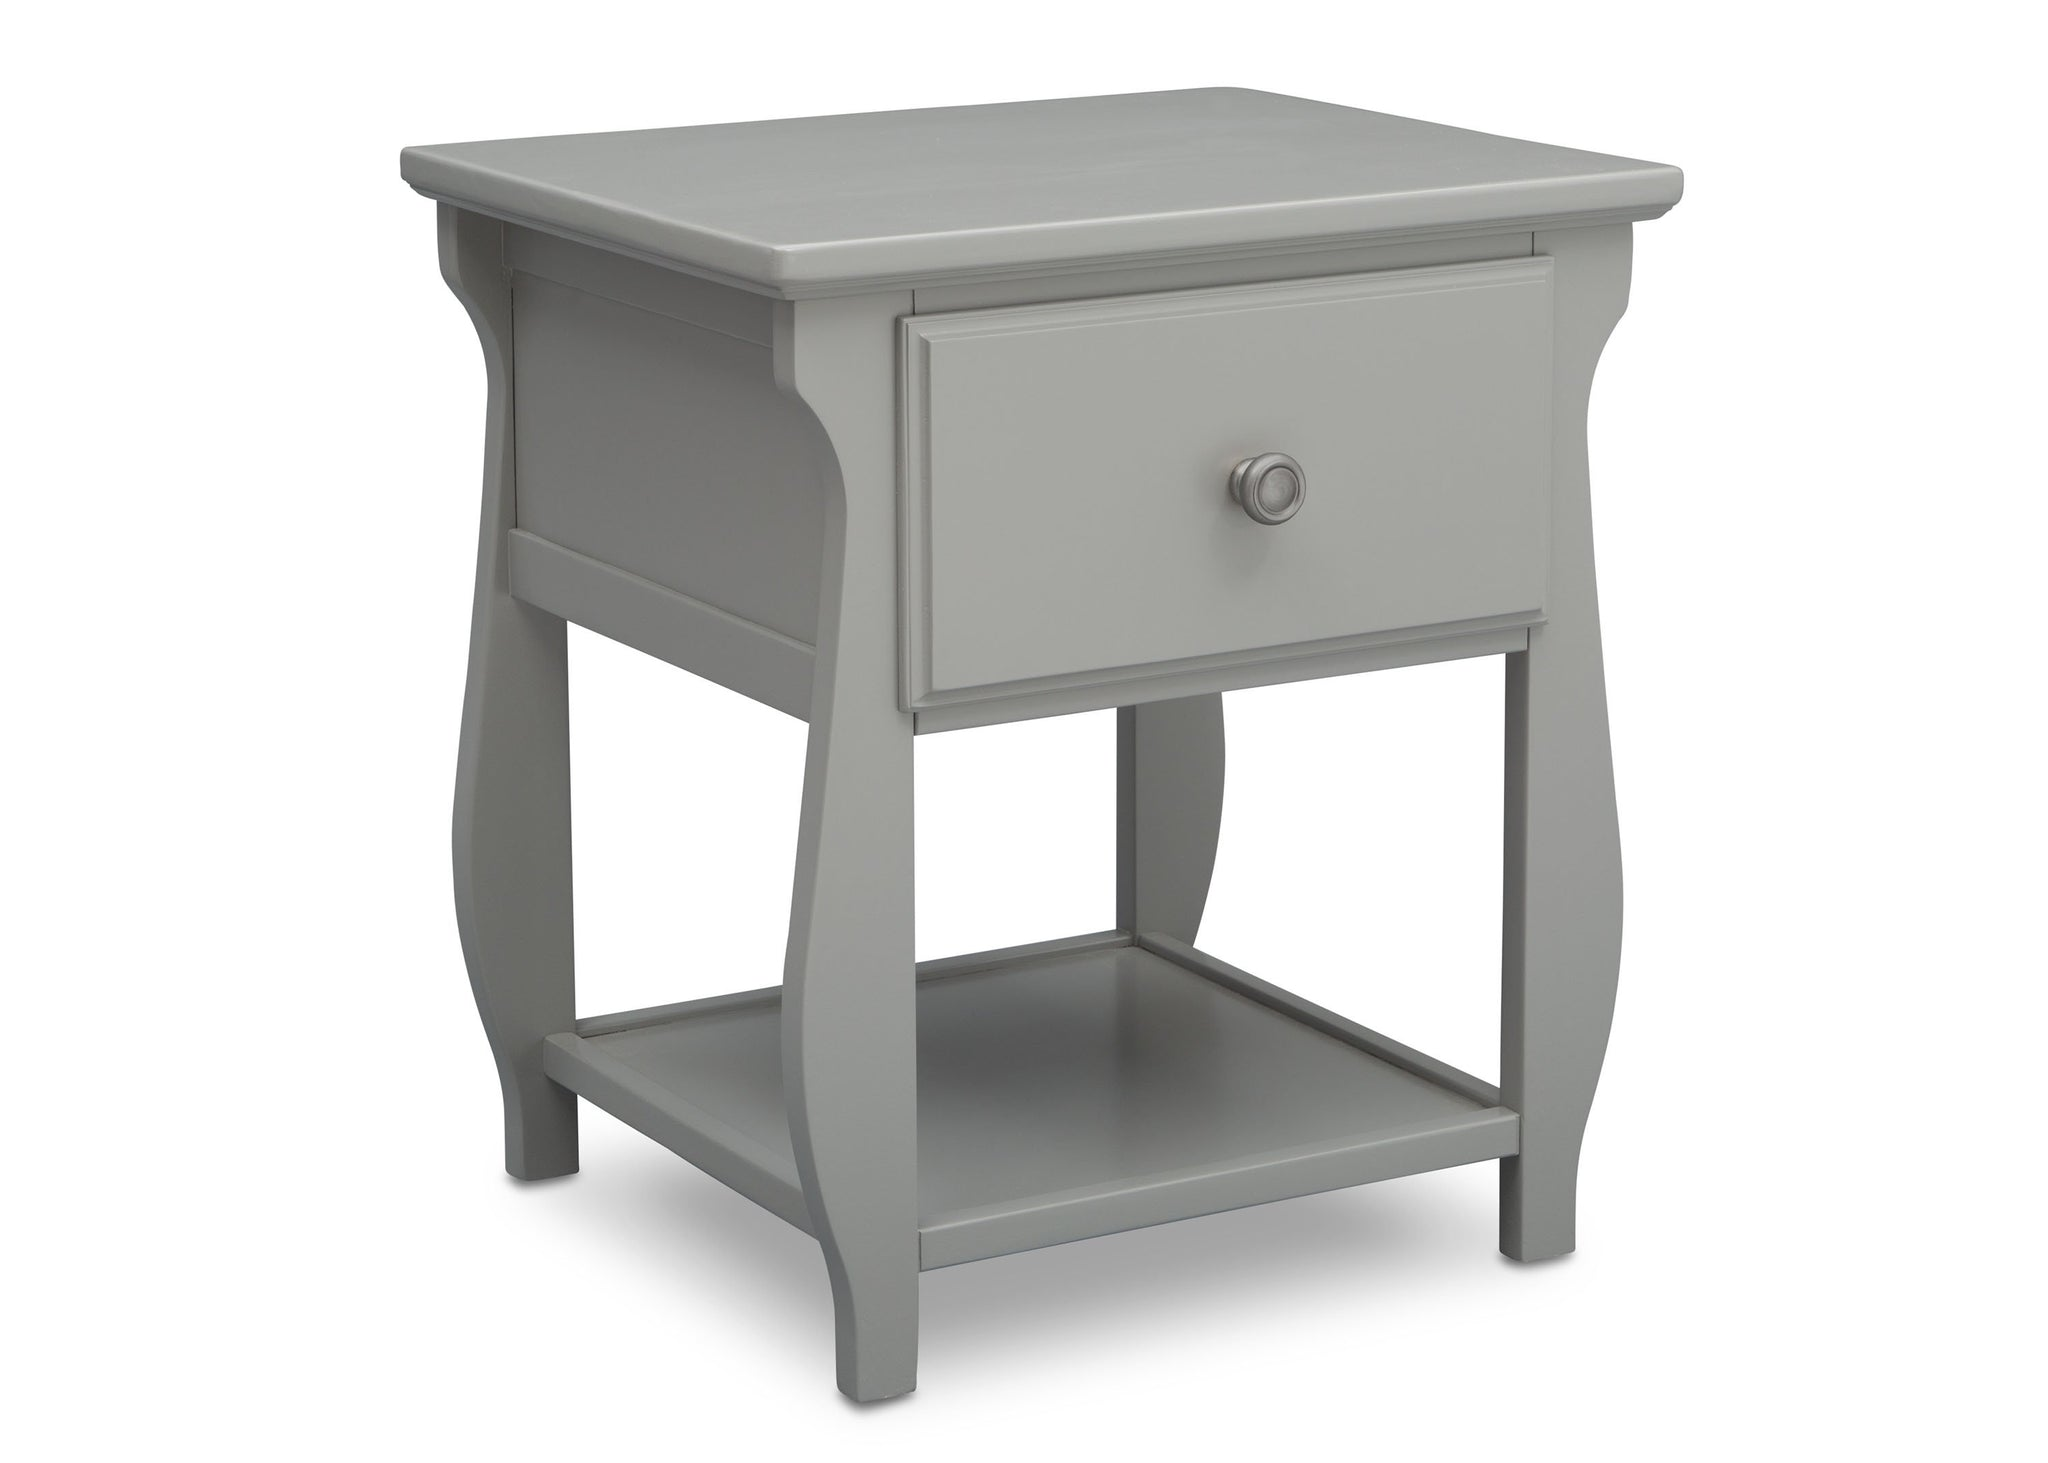 Delta Children Grey (026) Lancaster Nightstand (552020), Sideview, a3a